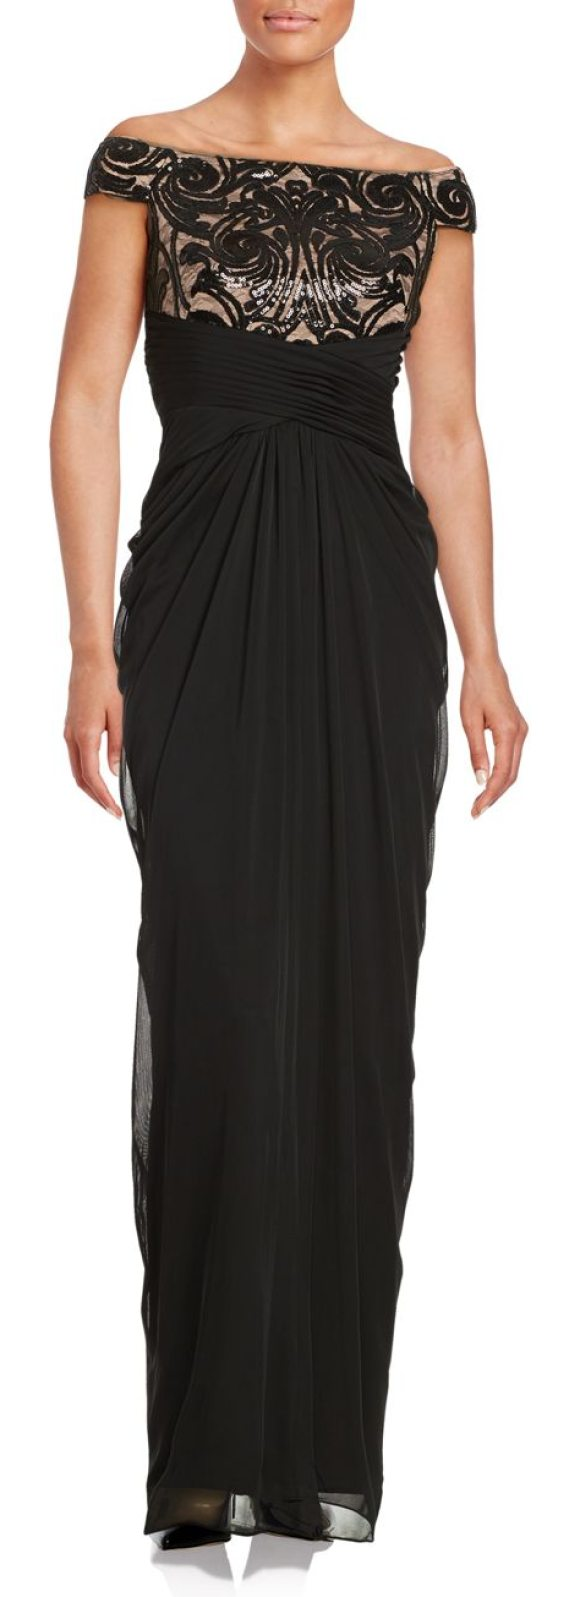 Adrianna Papell Off-the-Shoulder Sequined Dress in black - Lovely chiffon dress highlighted in sequins and pleated...